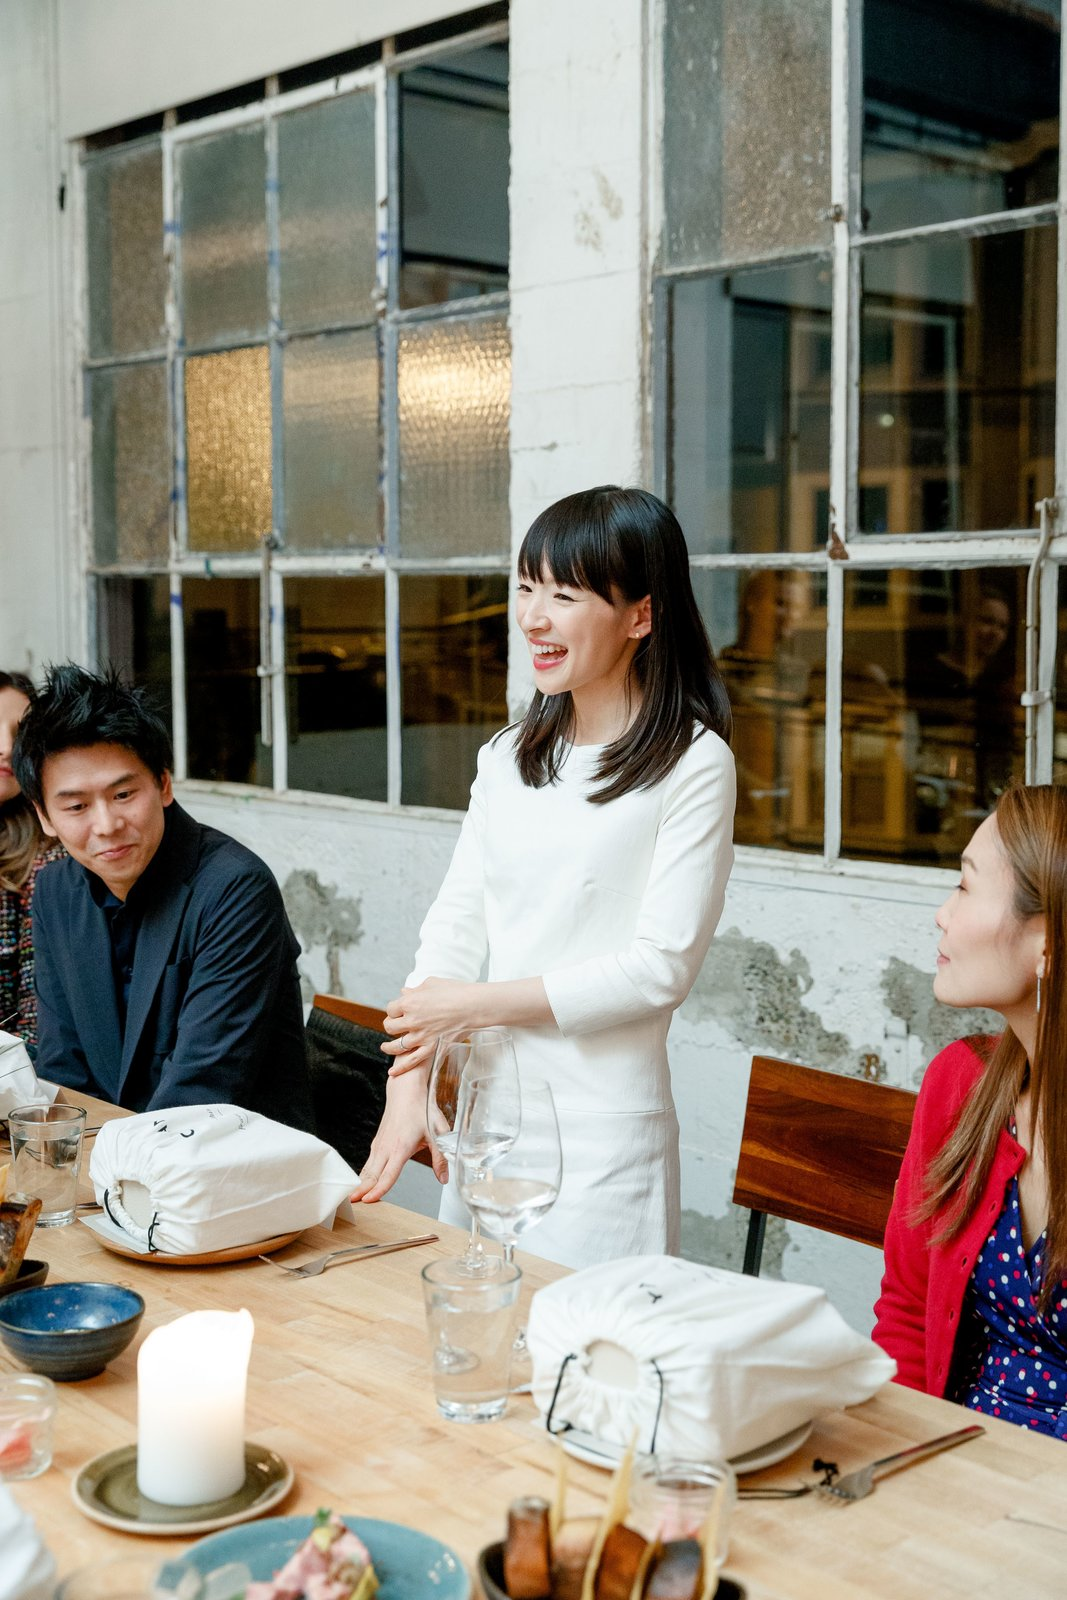 Dining Room, Table, and Chair Marie Kondo gives a speech at dinner with Cuyana and Dwell.  Photo 3 of 3 in 15 Chic Storage Bins to Spark Joy in Your Home from Watch: A Conversation With Decluttering Guru Marie Kondo